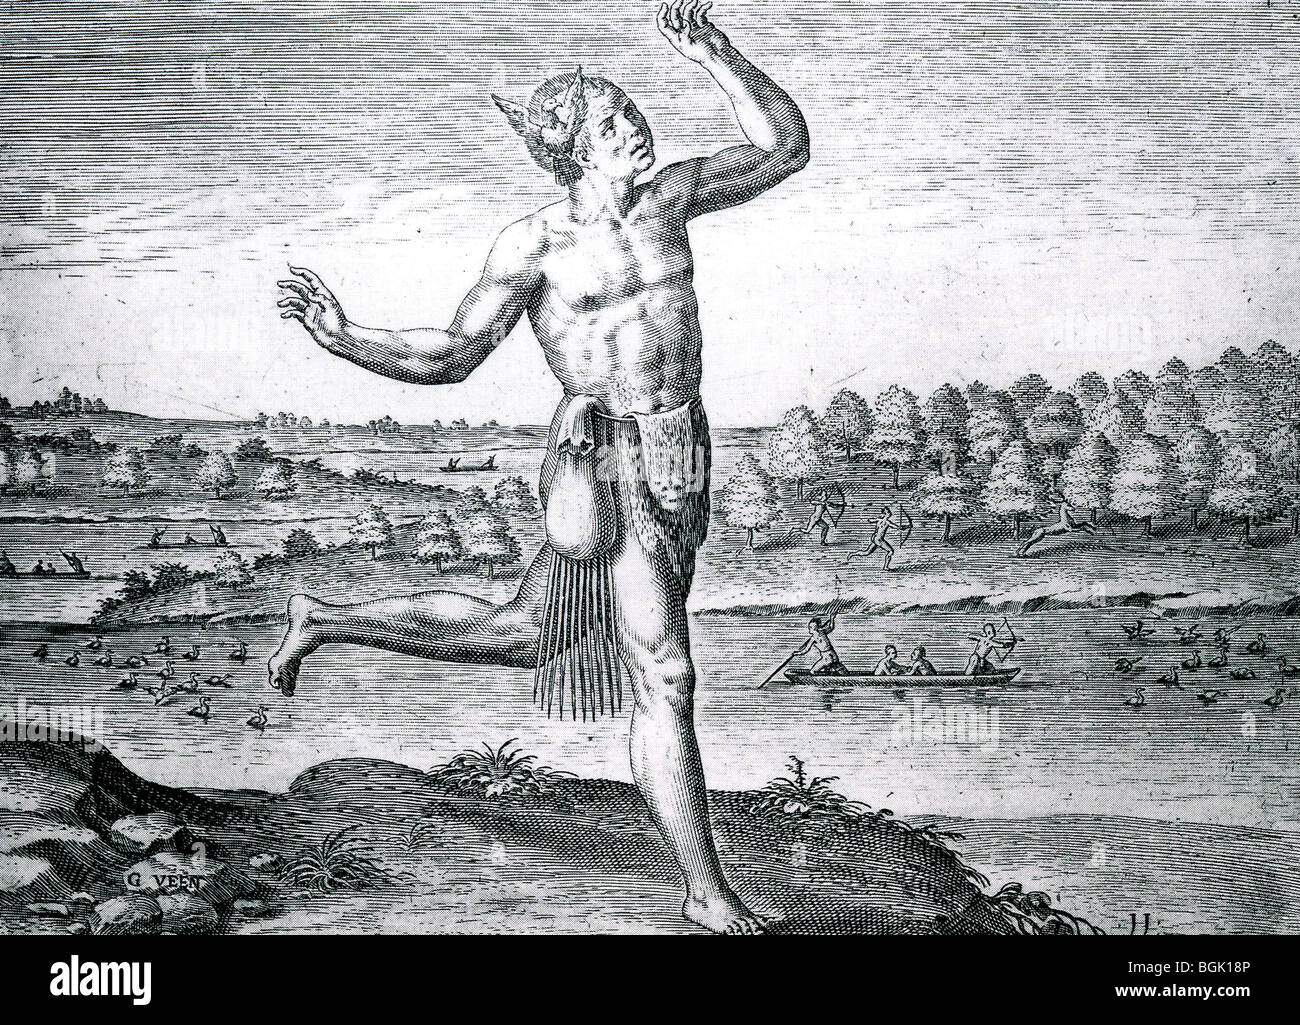 THE NOBLE SAVAGE - Engraving based on drawing by John White during an expedition to Roanoke Island, of Virginia, - Stock Image